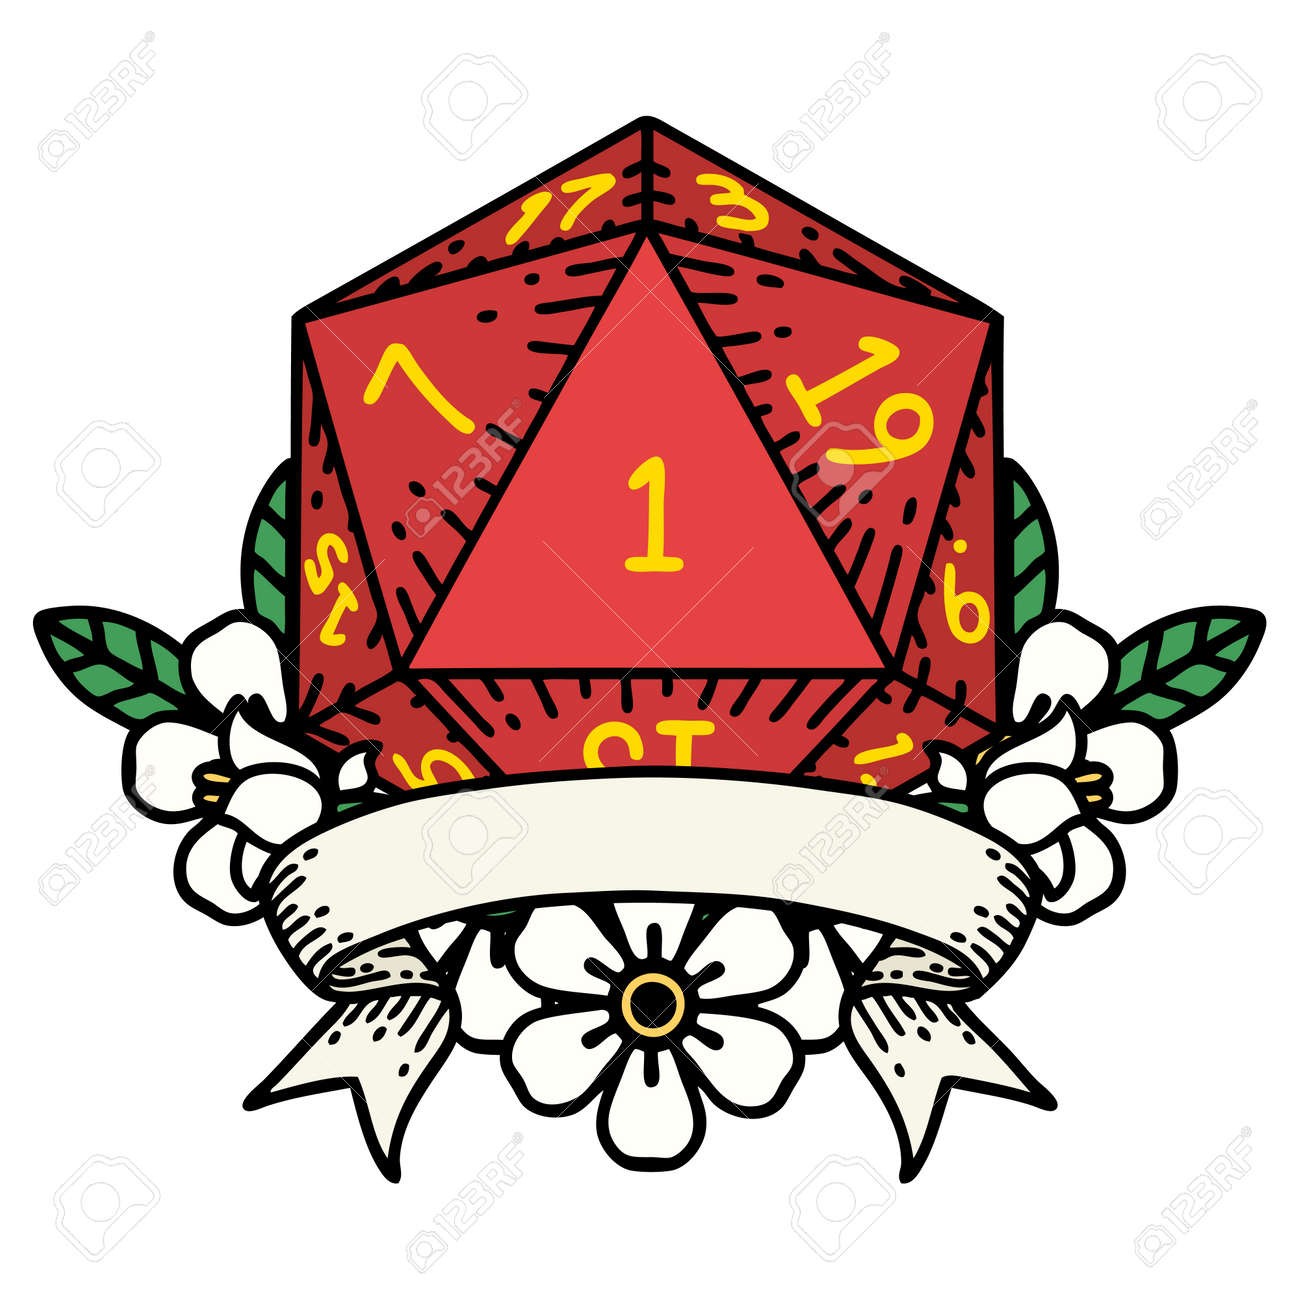 Retro Tattoo Style natural one d20 dice roll - 146143104